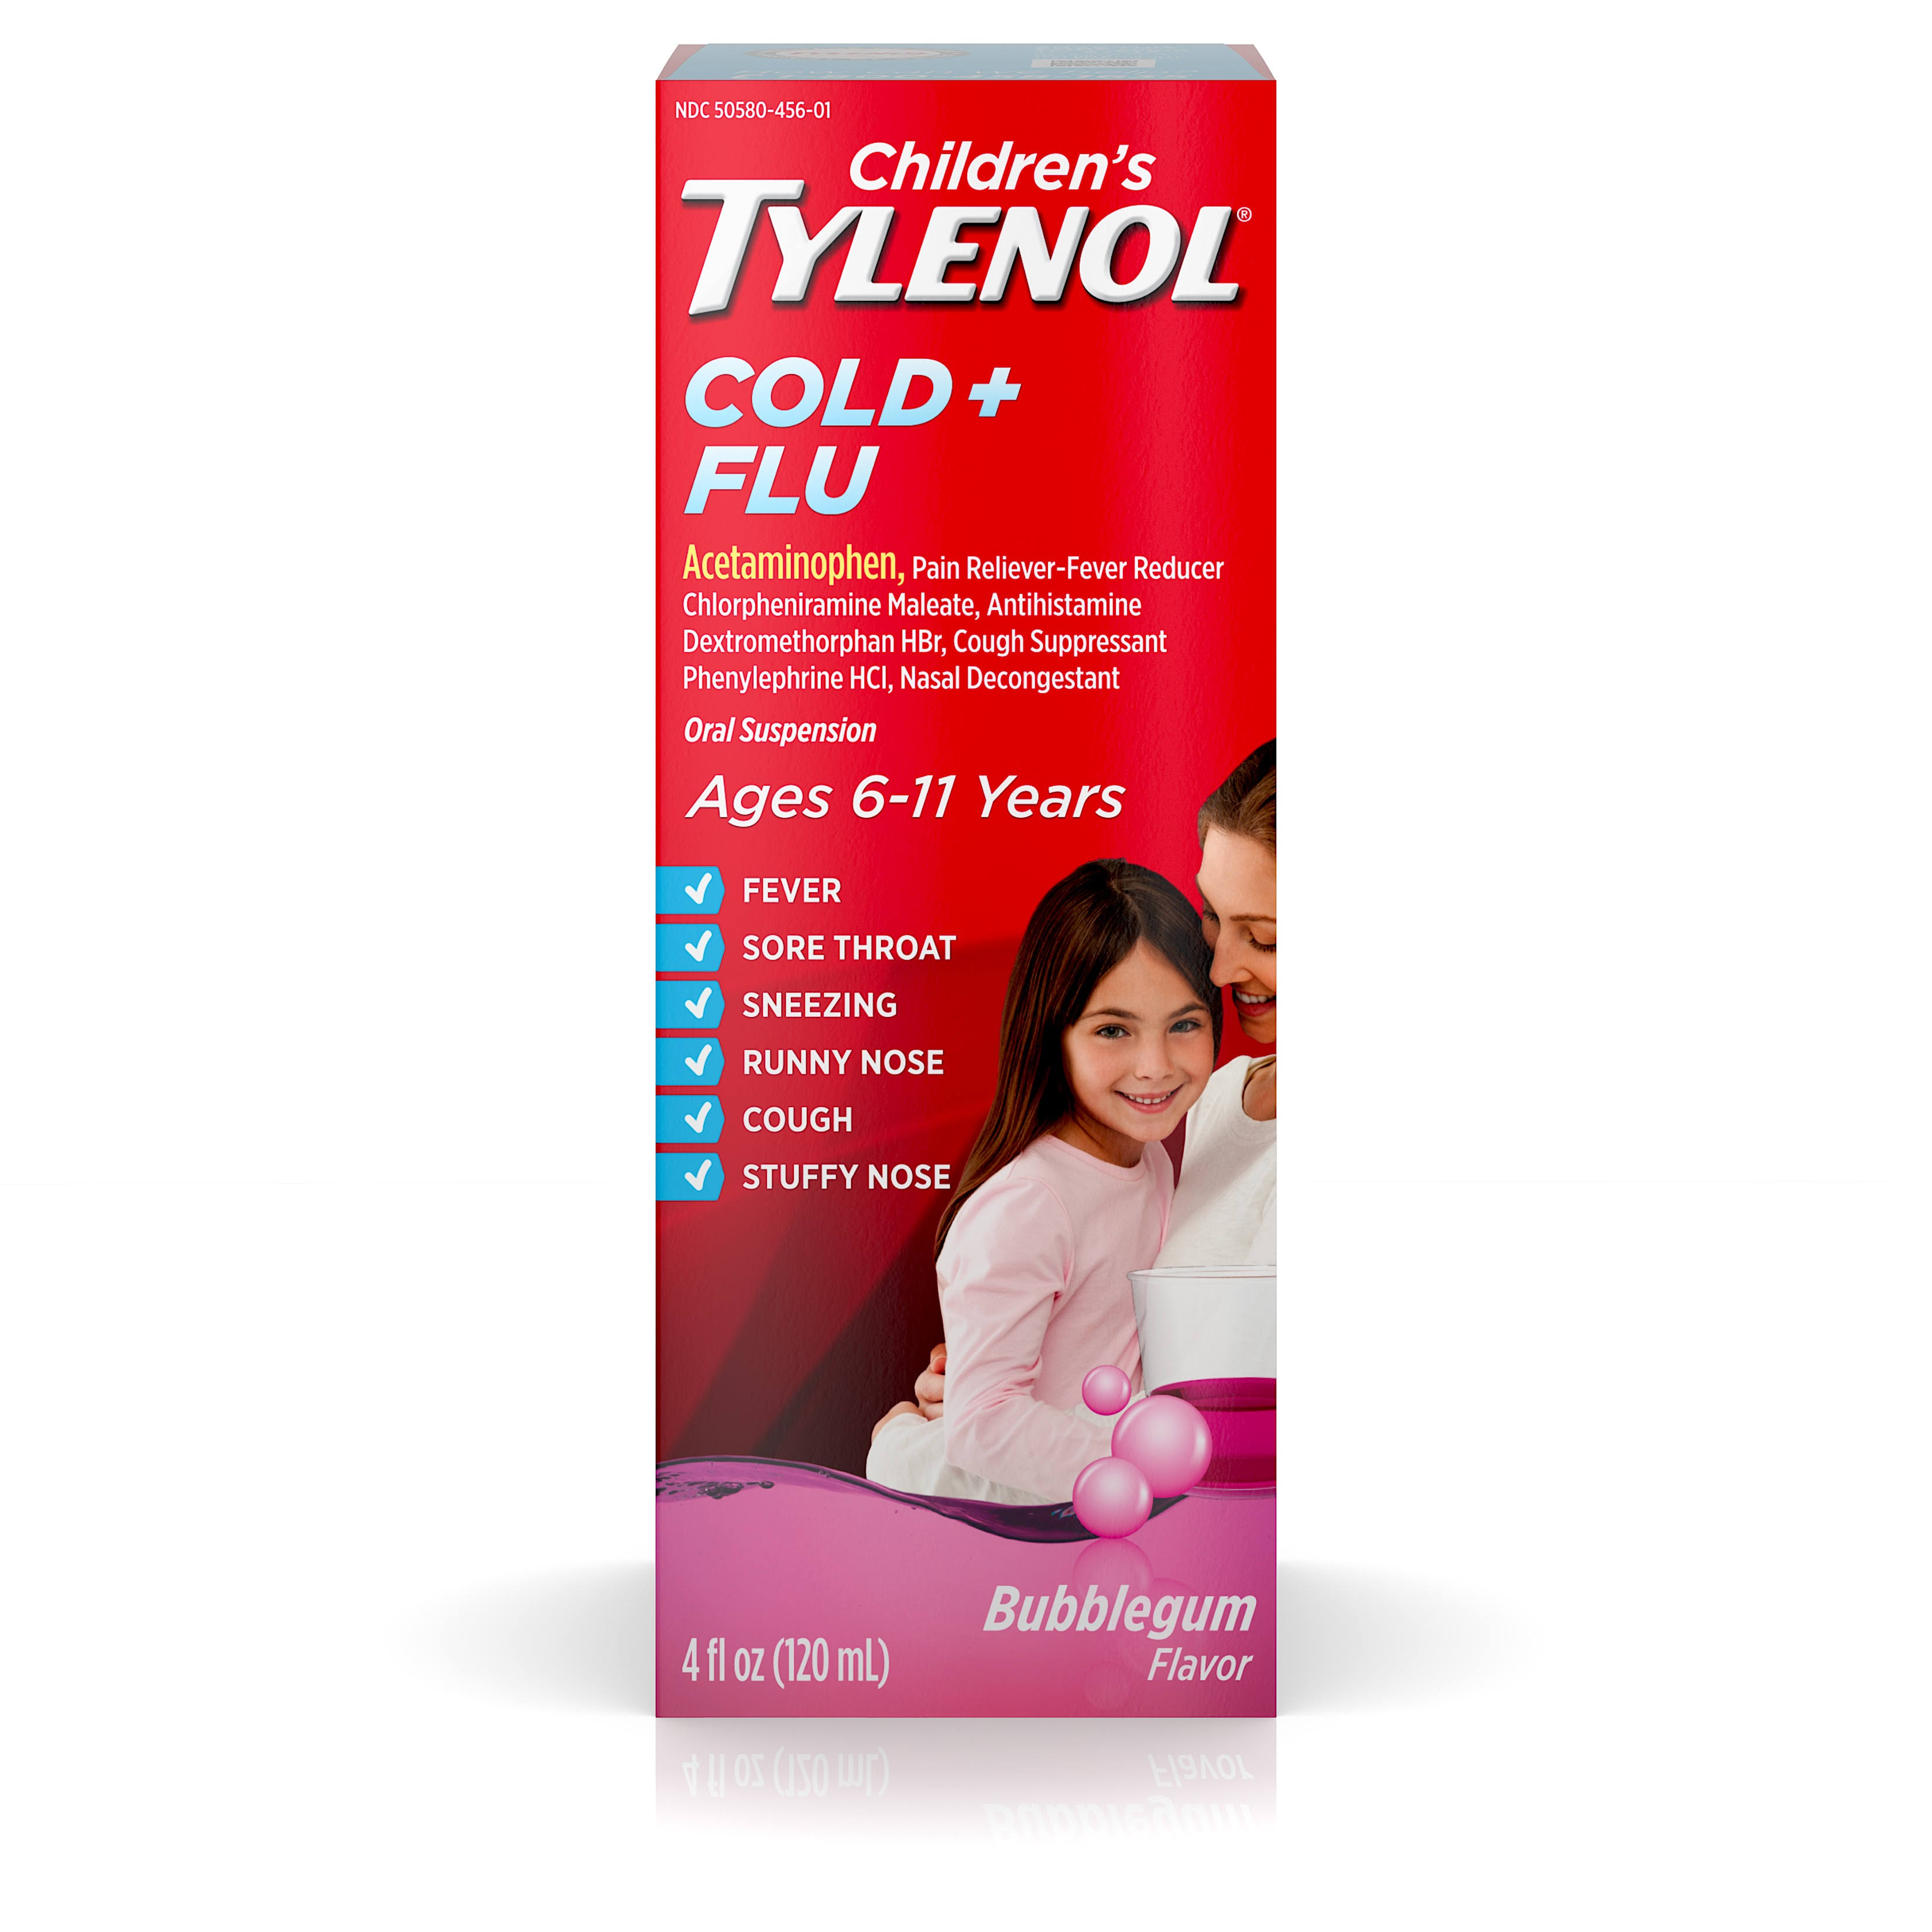 Tylenol Children's Cold and Flu Suspension - Bubblegum, 4oz